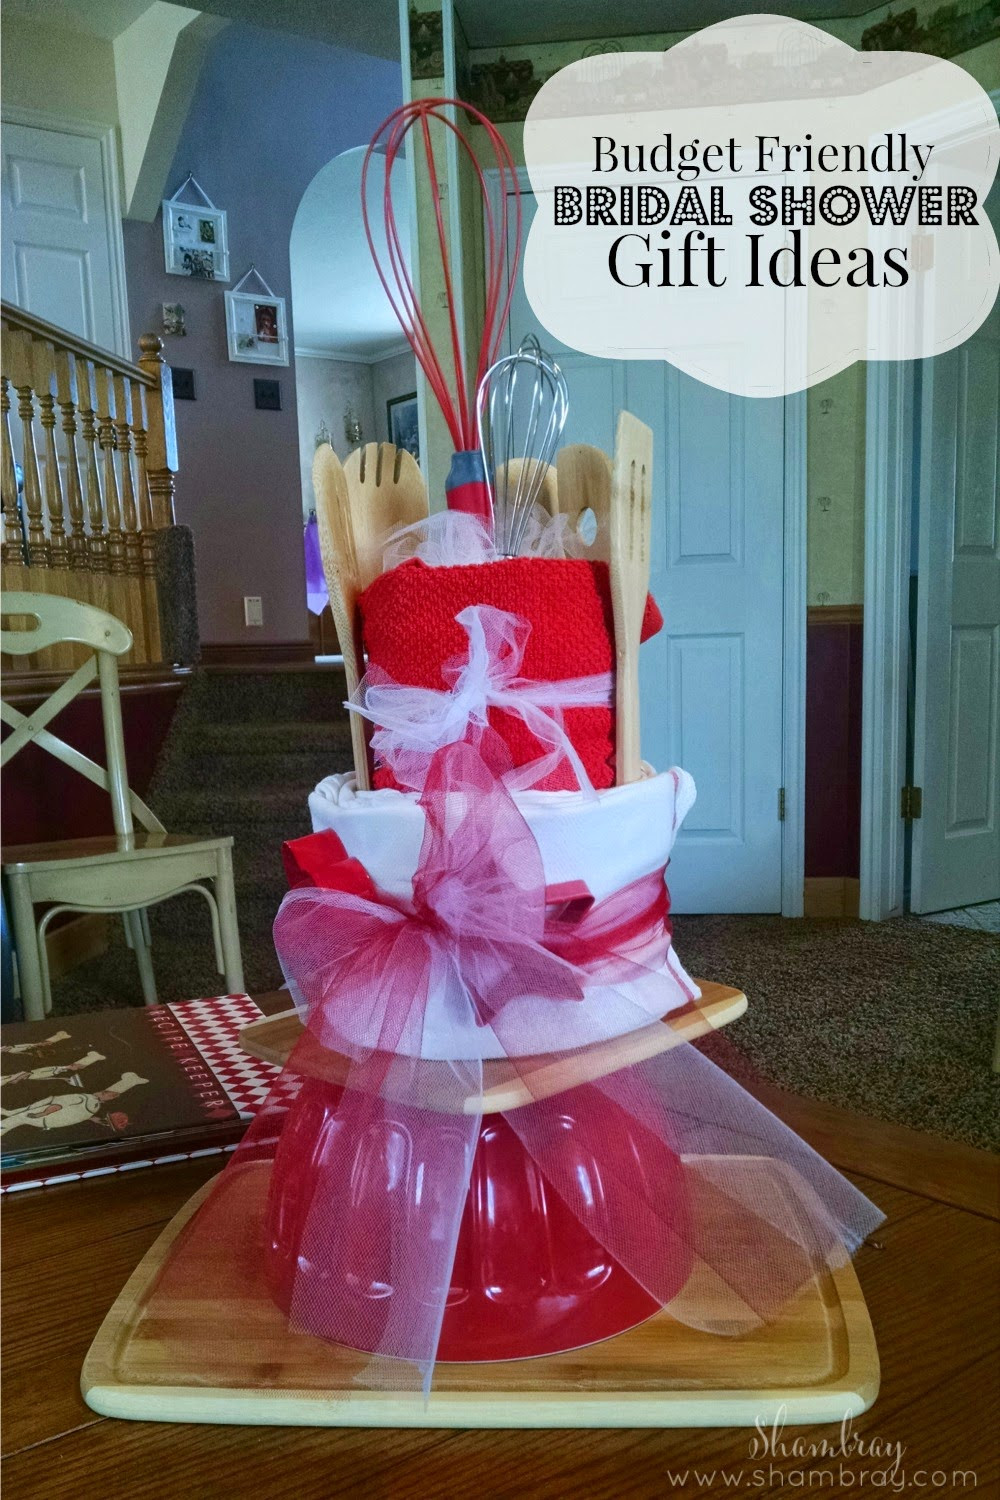 Best ideas about Wedding Gift Ideas For Bride . Save or Pin Shambray Bud Friendly Bridal Shower Gift Ideas Now.